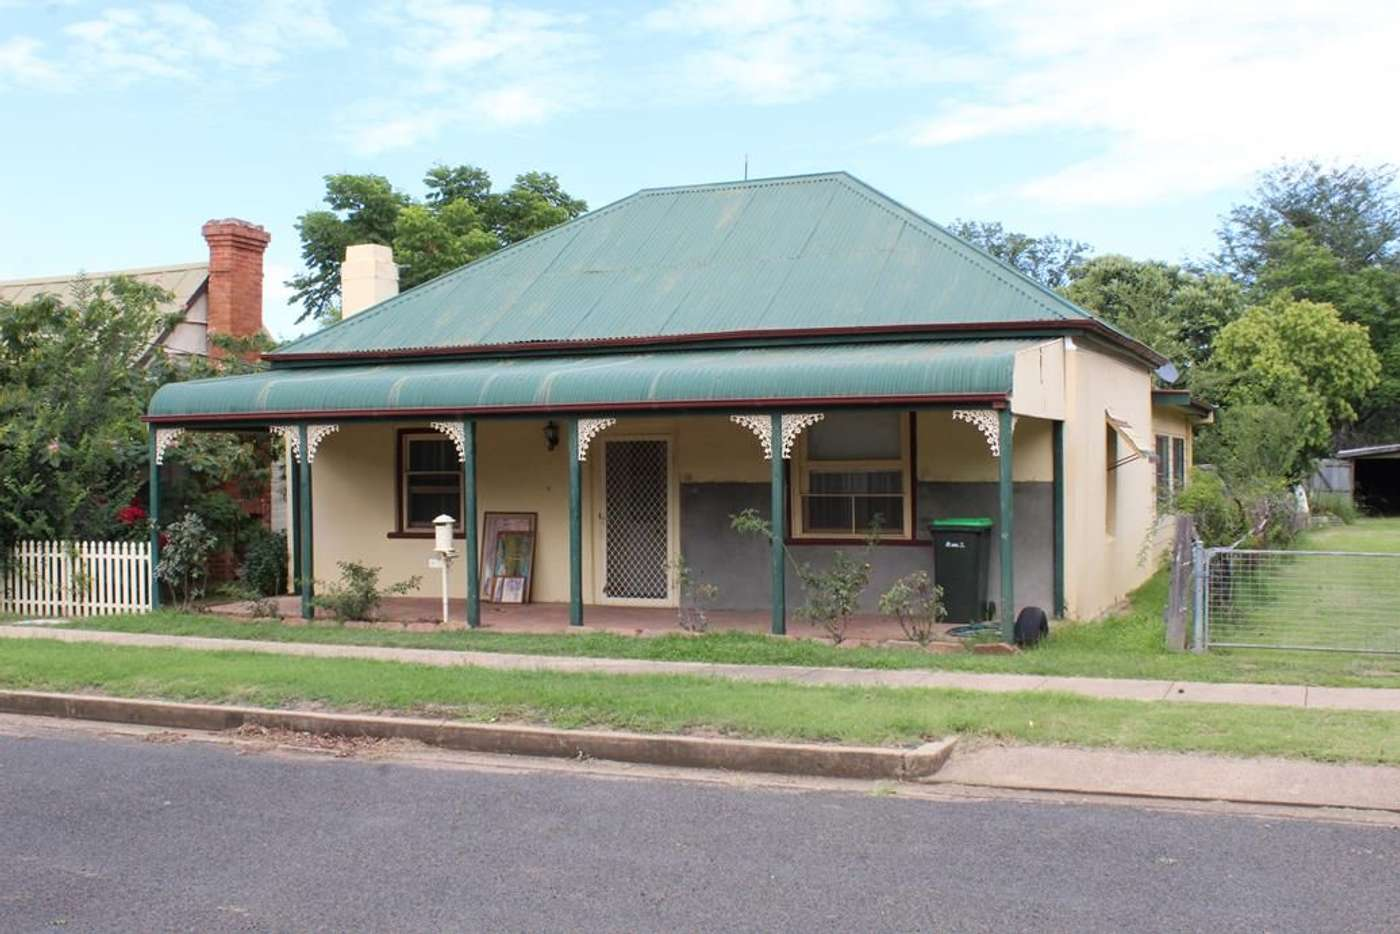 Main view of Homely house listing, 14 Maitland Street, Bingara NSW 2404